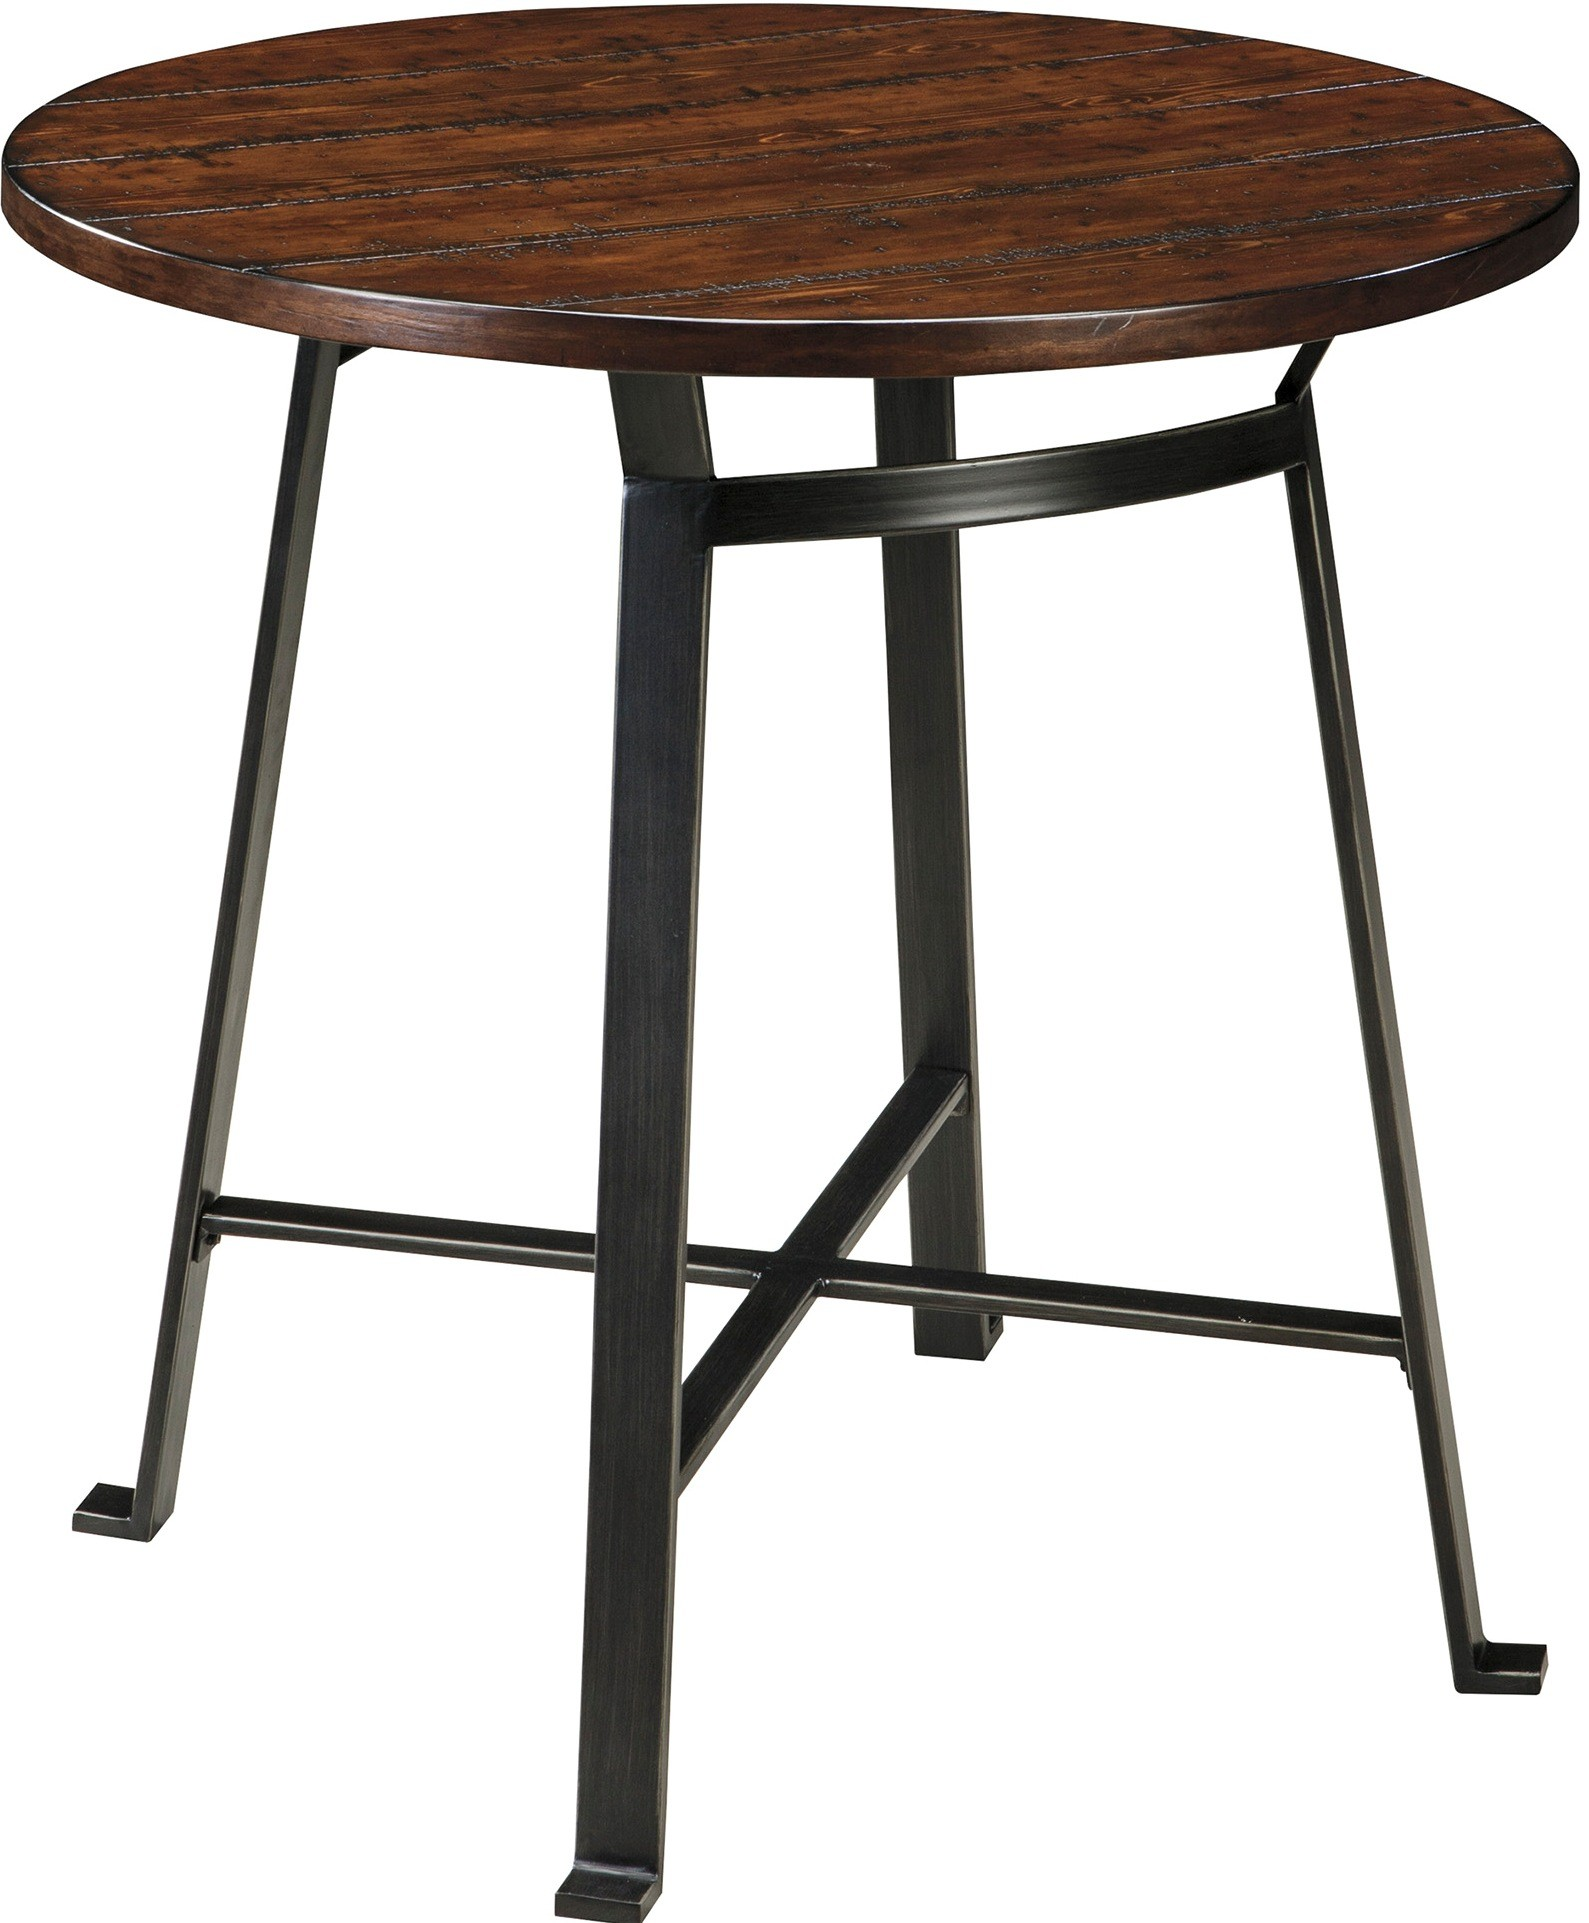 challiman round dining room bar table from ashley d307 12 coleman furniture. Black Bedroom Furniture Sets. Home Design Ideas